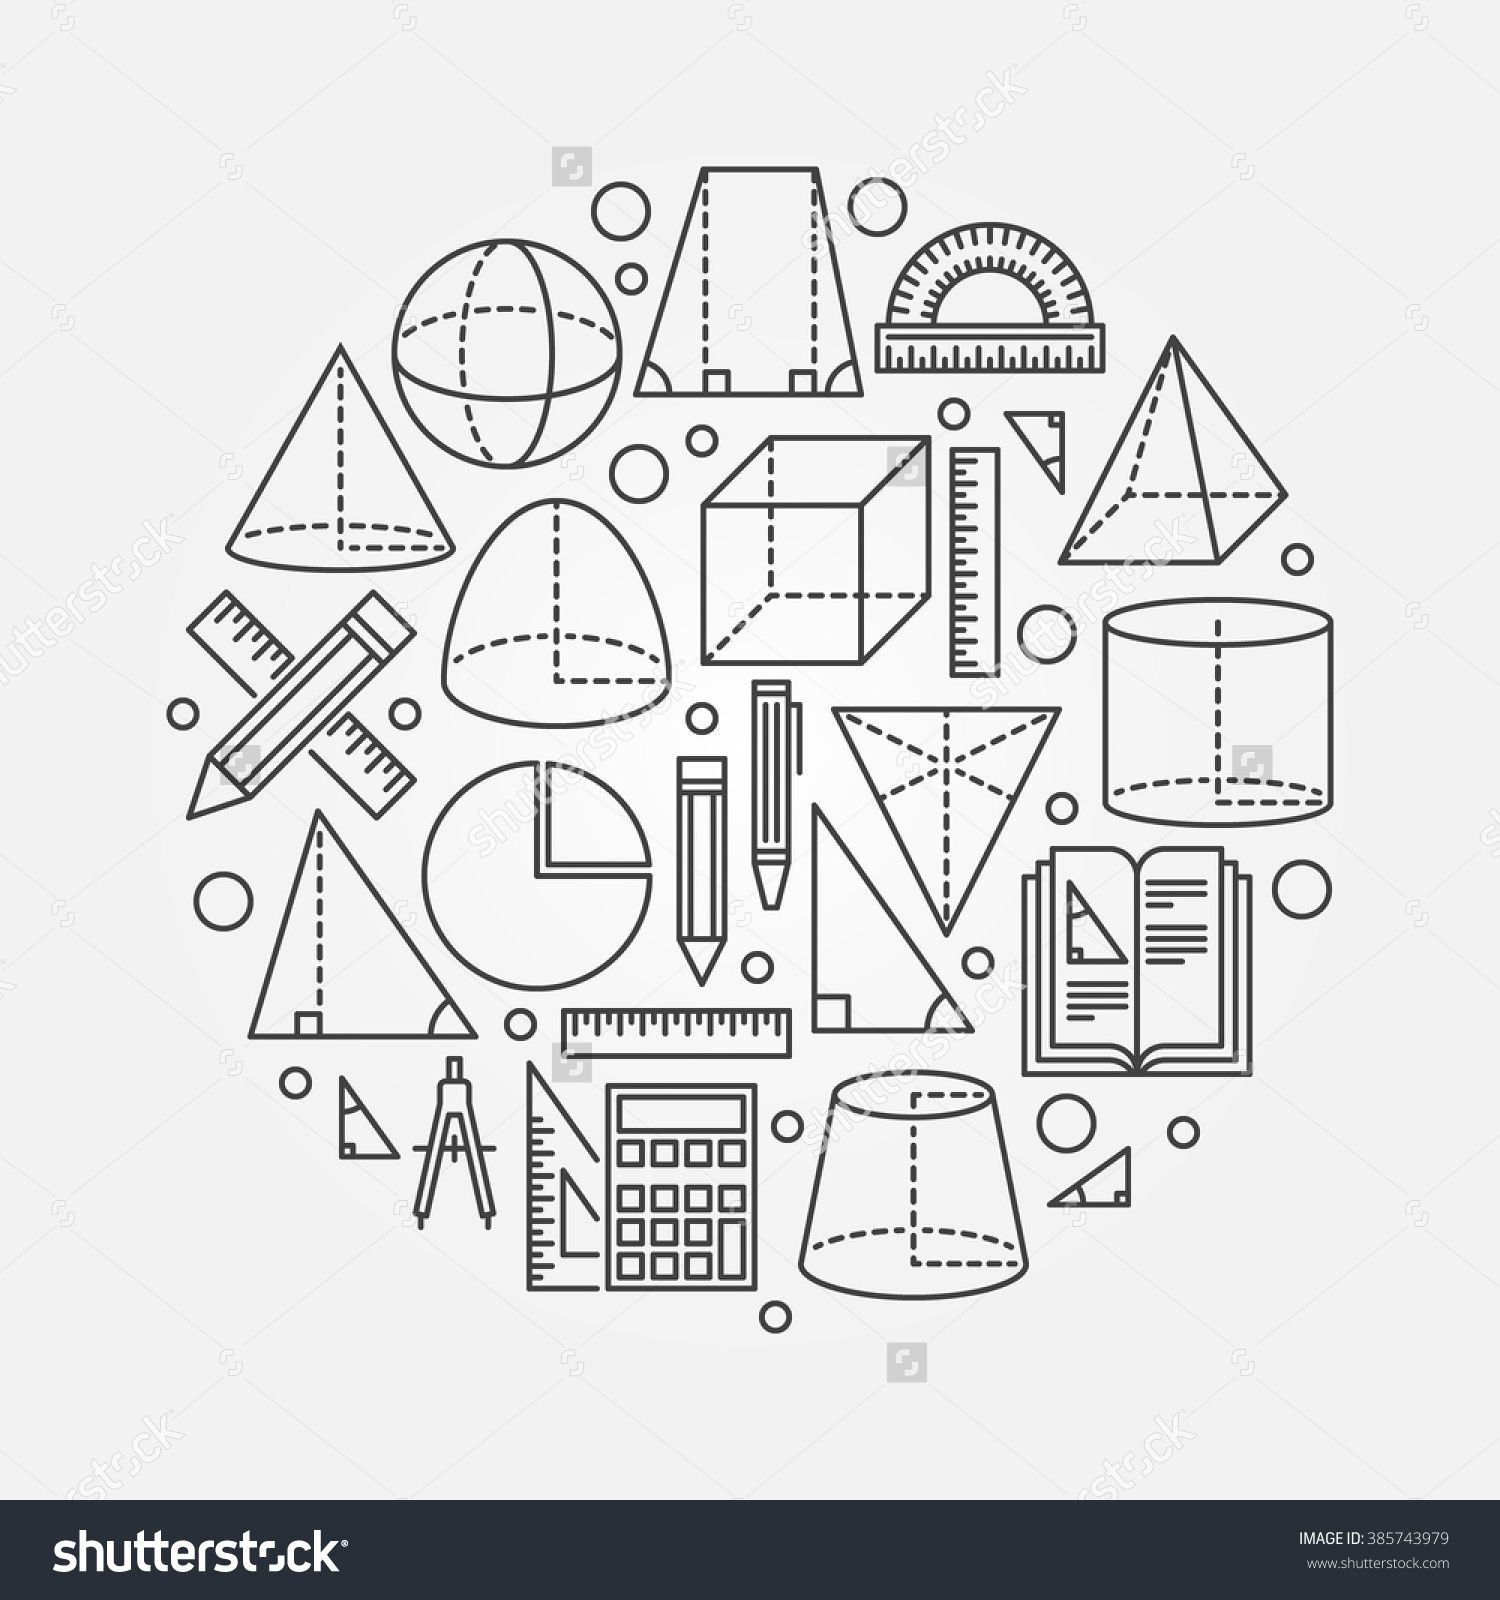 Trigonometry And Geometry Illustration Vector Round Geometry Or Mathematics Concept Background Made With Thin Line Icon Free Art Prints Math Design Math Logo